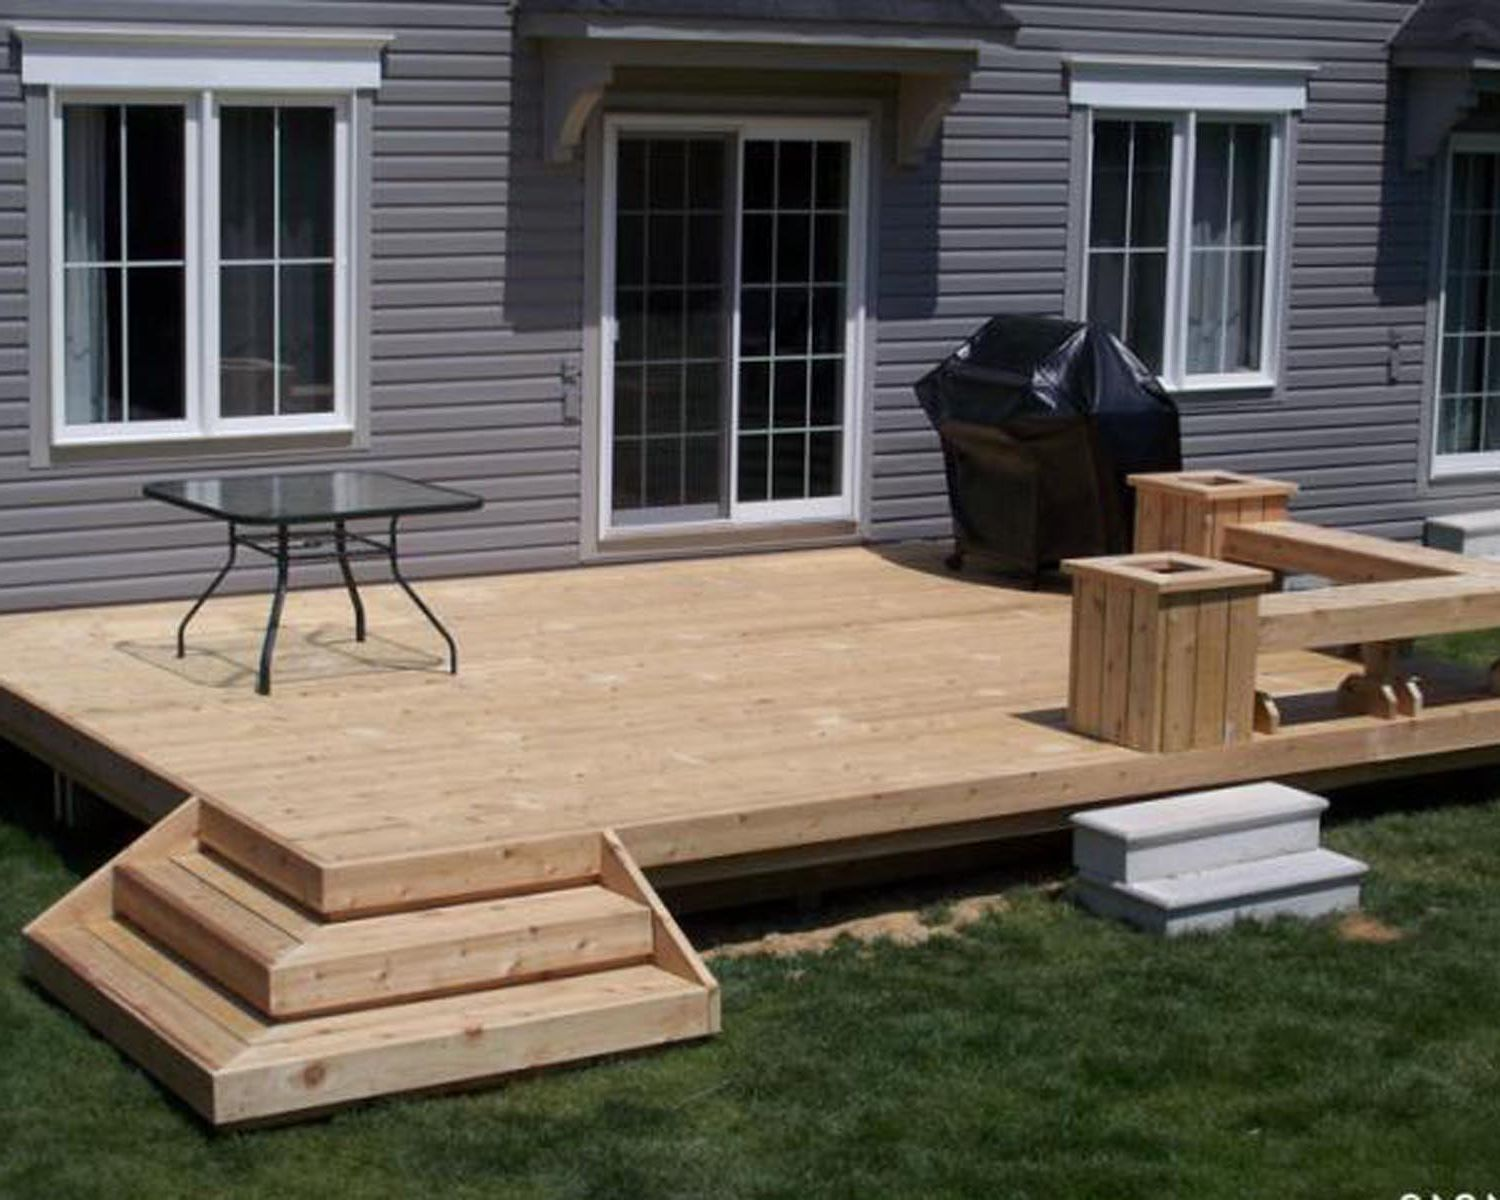 Deck Design Ideas deck designs ideas pictures hgtv Outdoor Grabbing Exterior Beauty With Small Backyard Deck Ideas Simple Decoration For Small Backyard